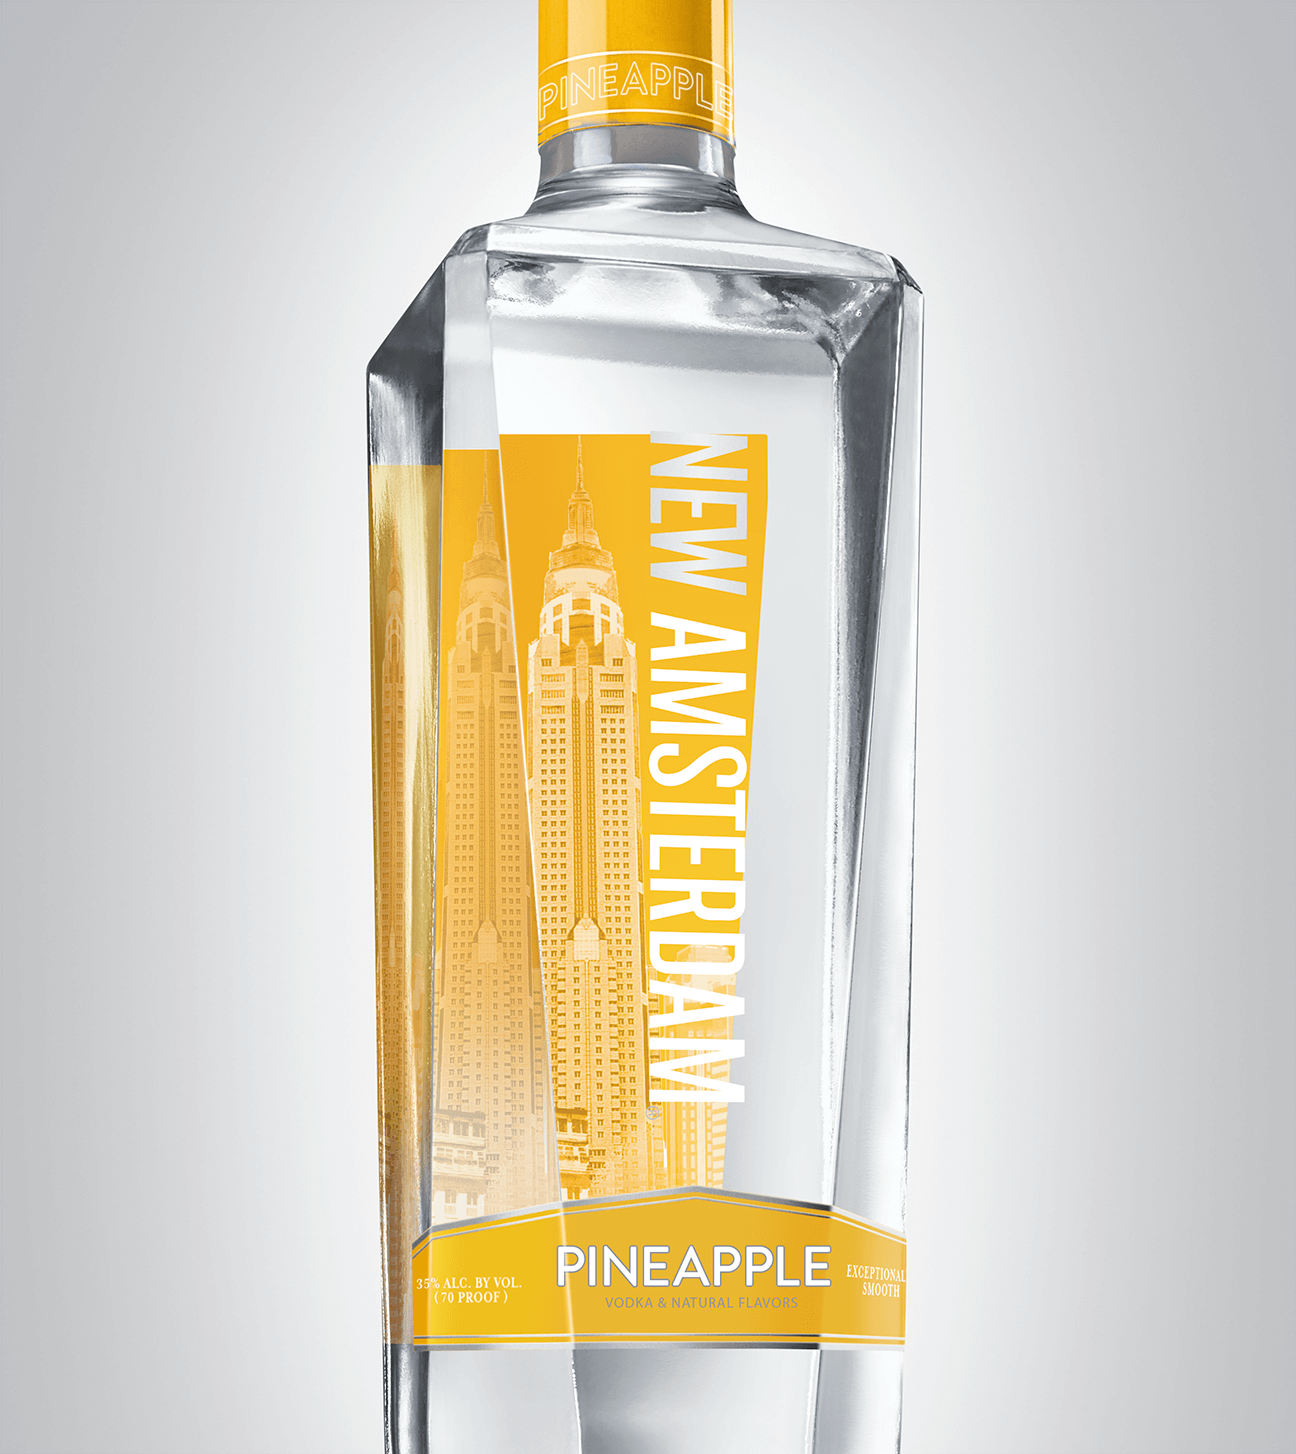 Bottle of New Amsterdam Pineapple